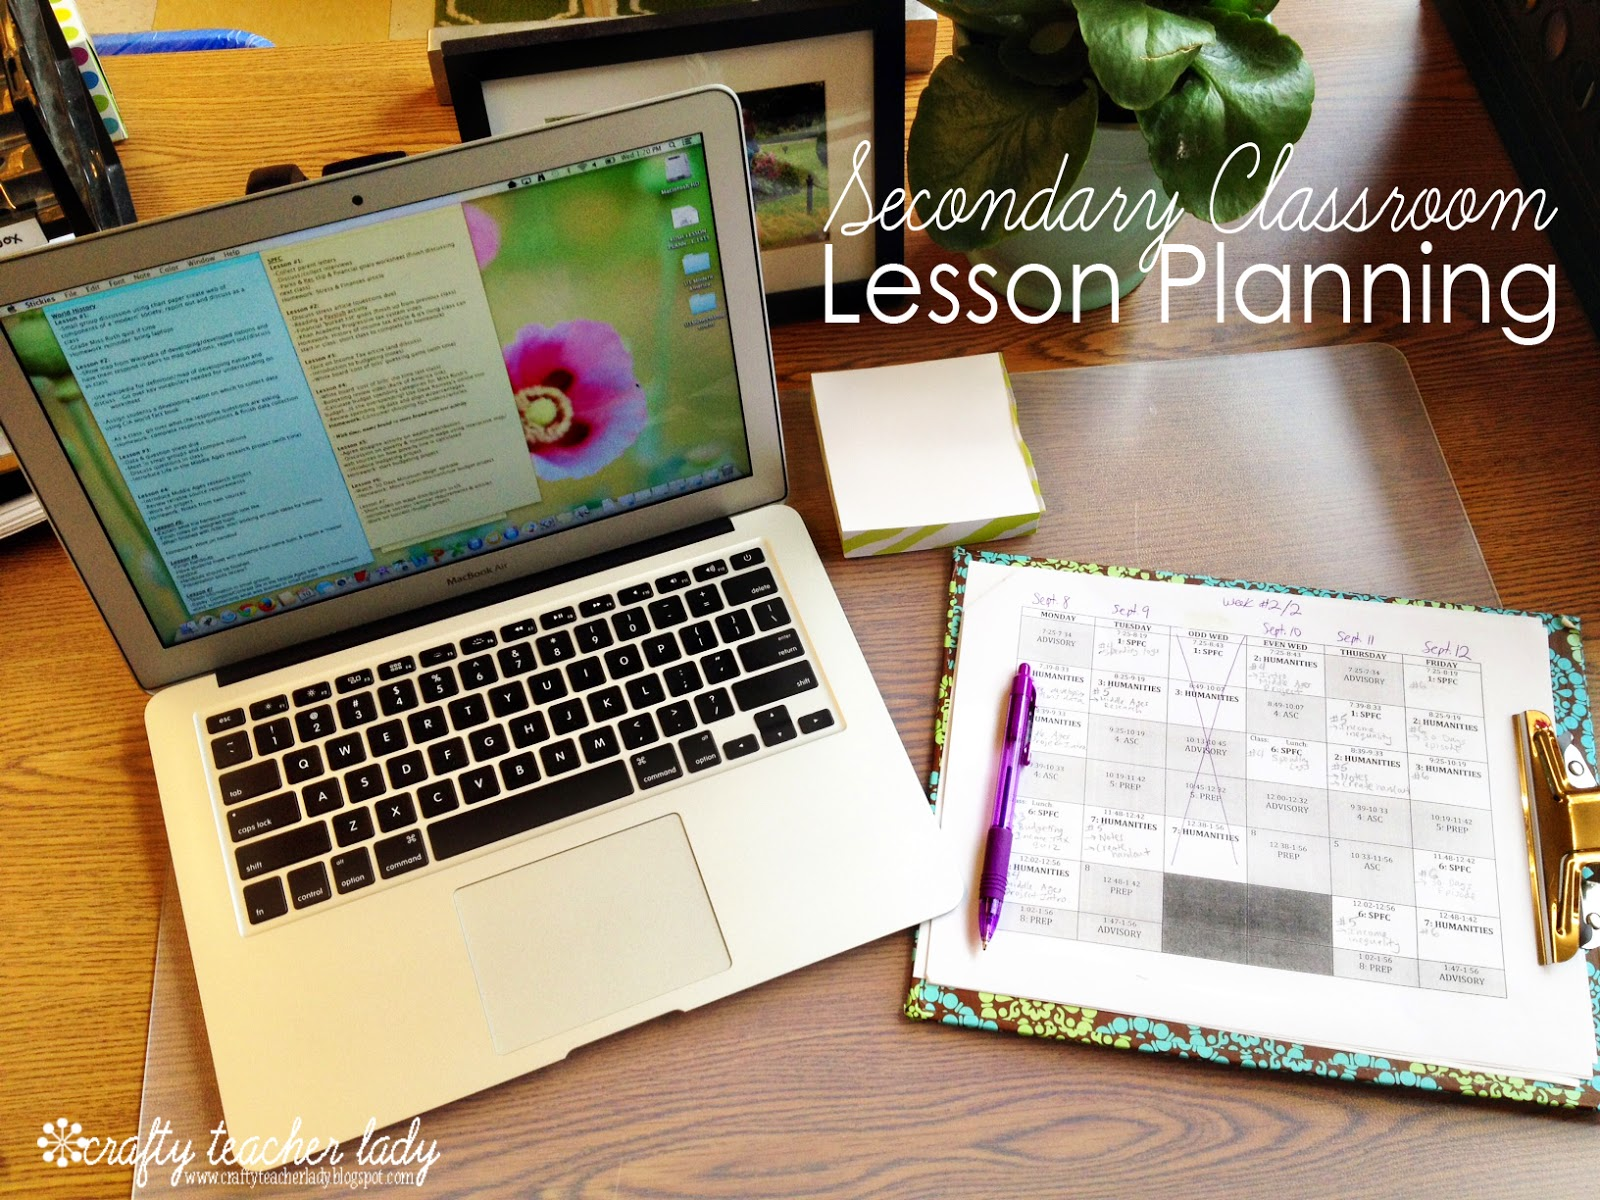 High School lesson planning ideas